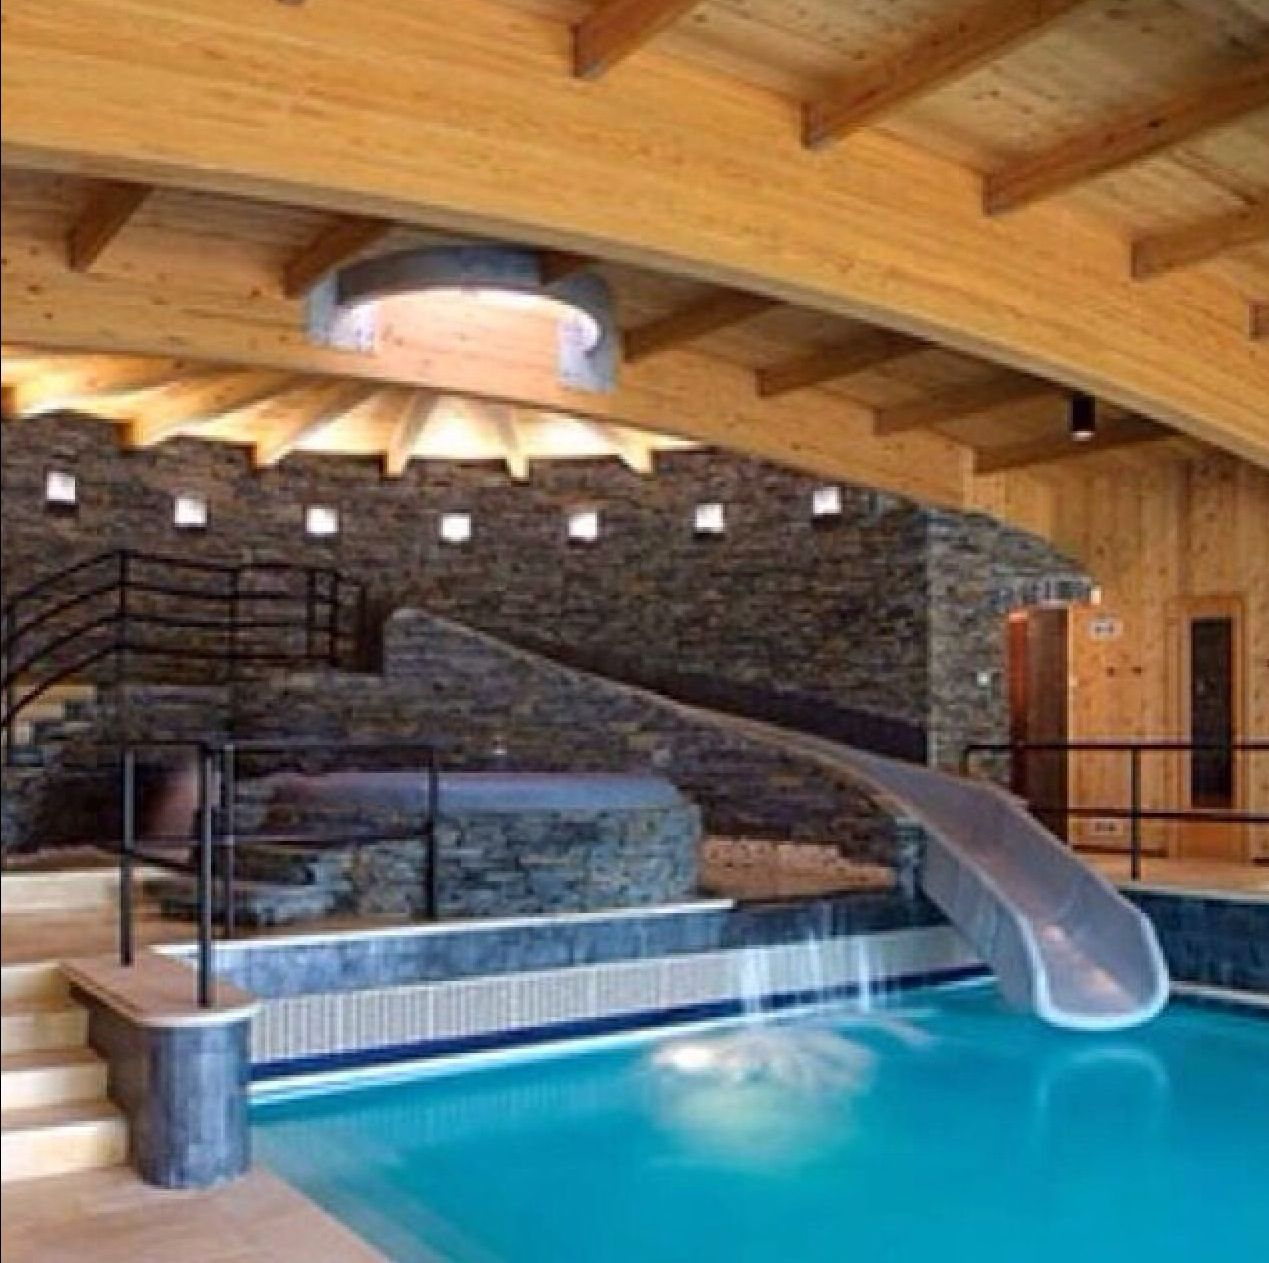 Cool Pool With Mattress To Relax On And Fun Pool Surrounded By Nice Blocks Pool Houses Dream House New England Homes